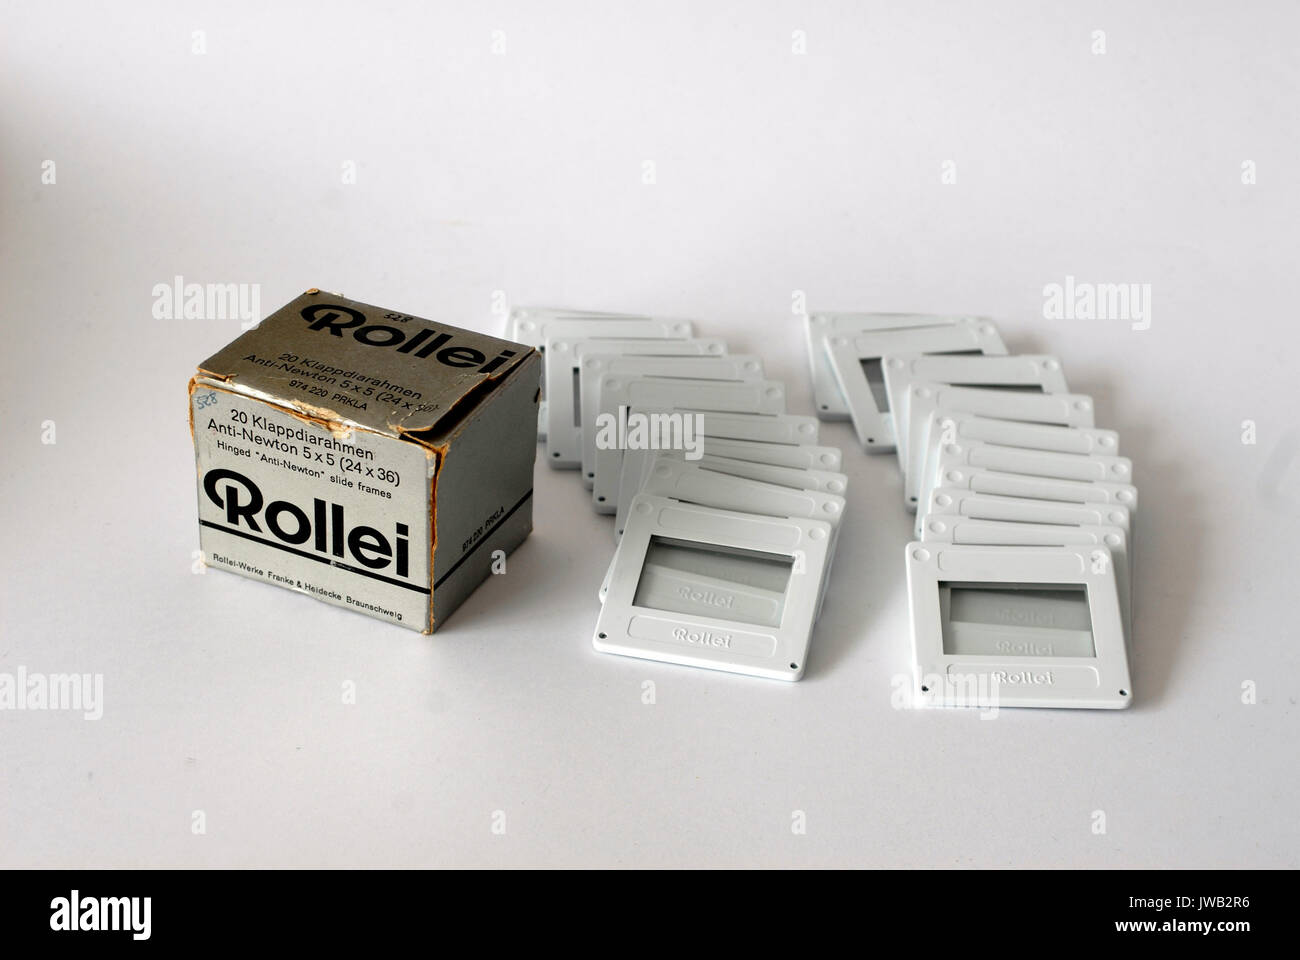 Vintage box of frames for slides, Rollei Brand Stock Photo ...